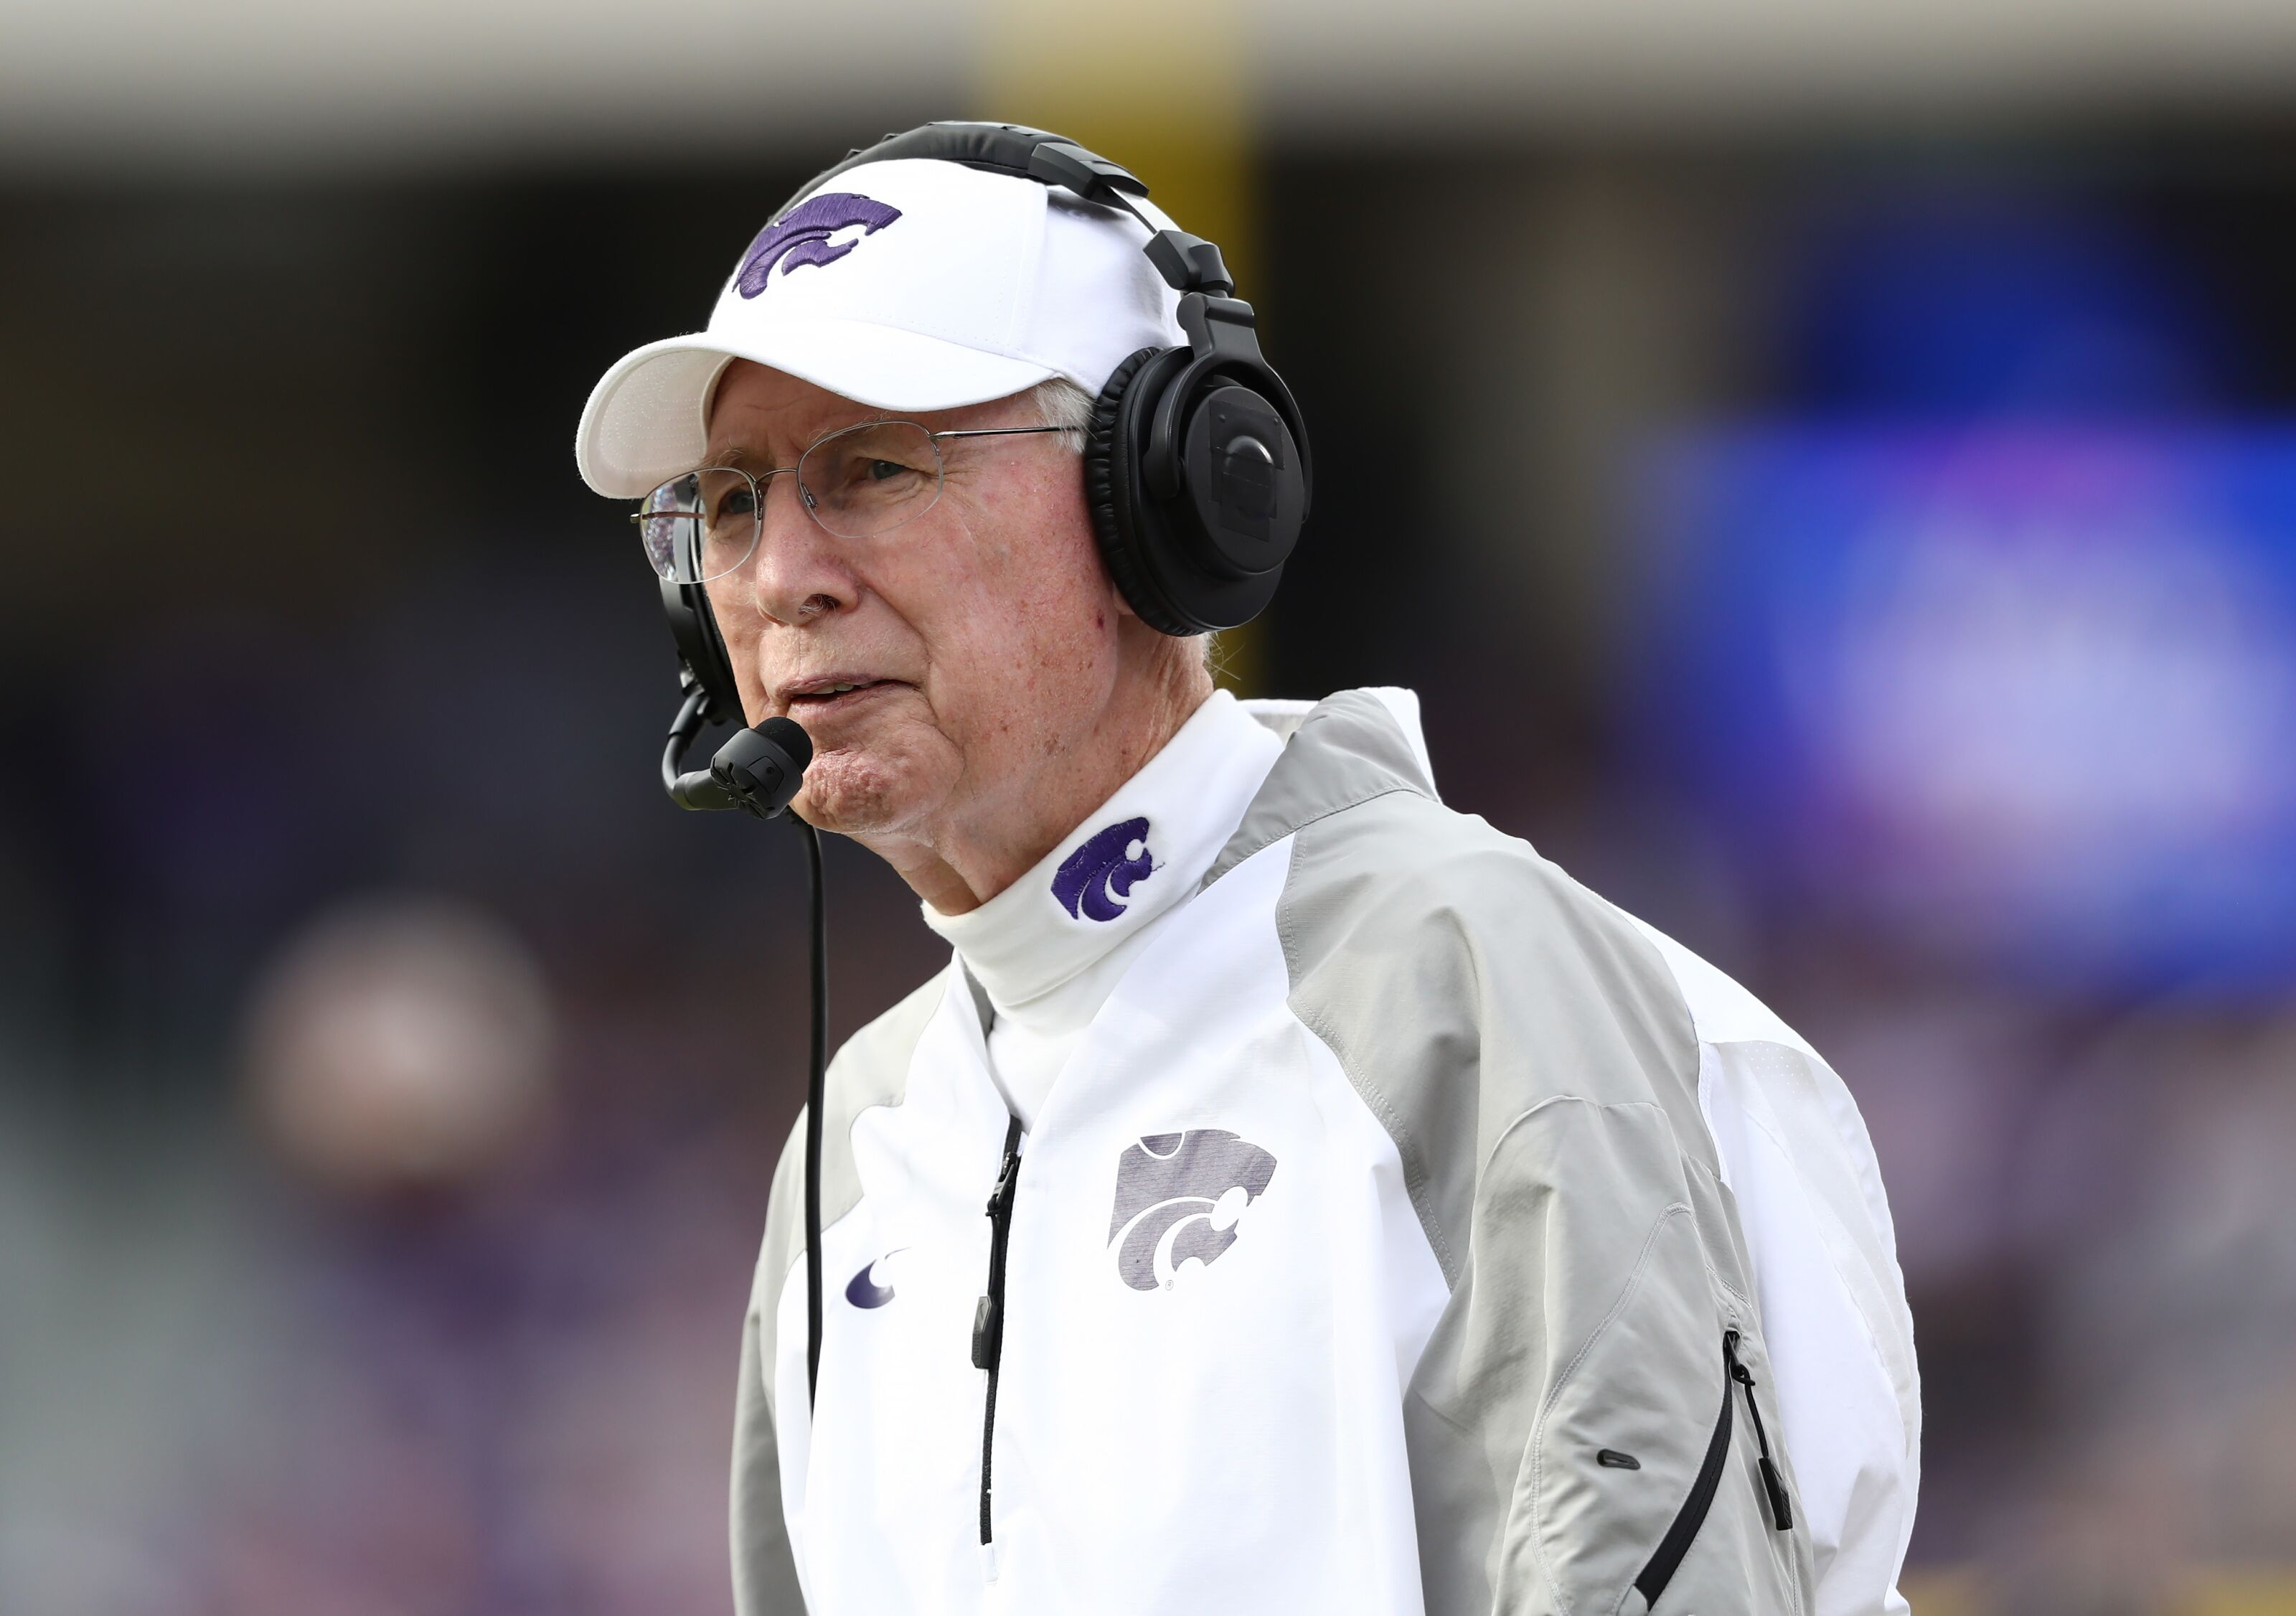 SMQ: The Grover Clevelands of college football head coaches